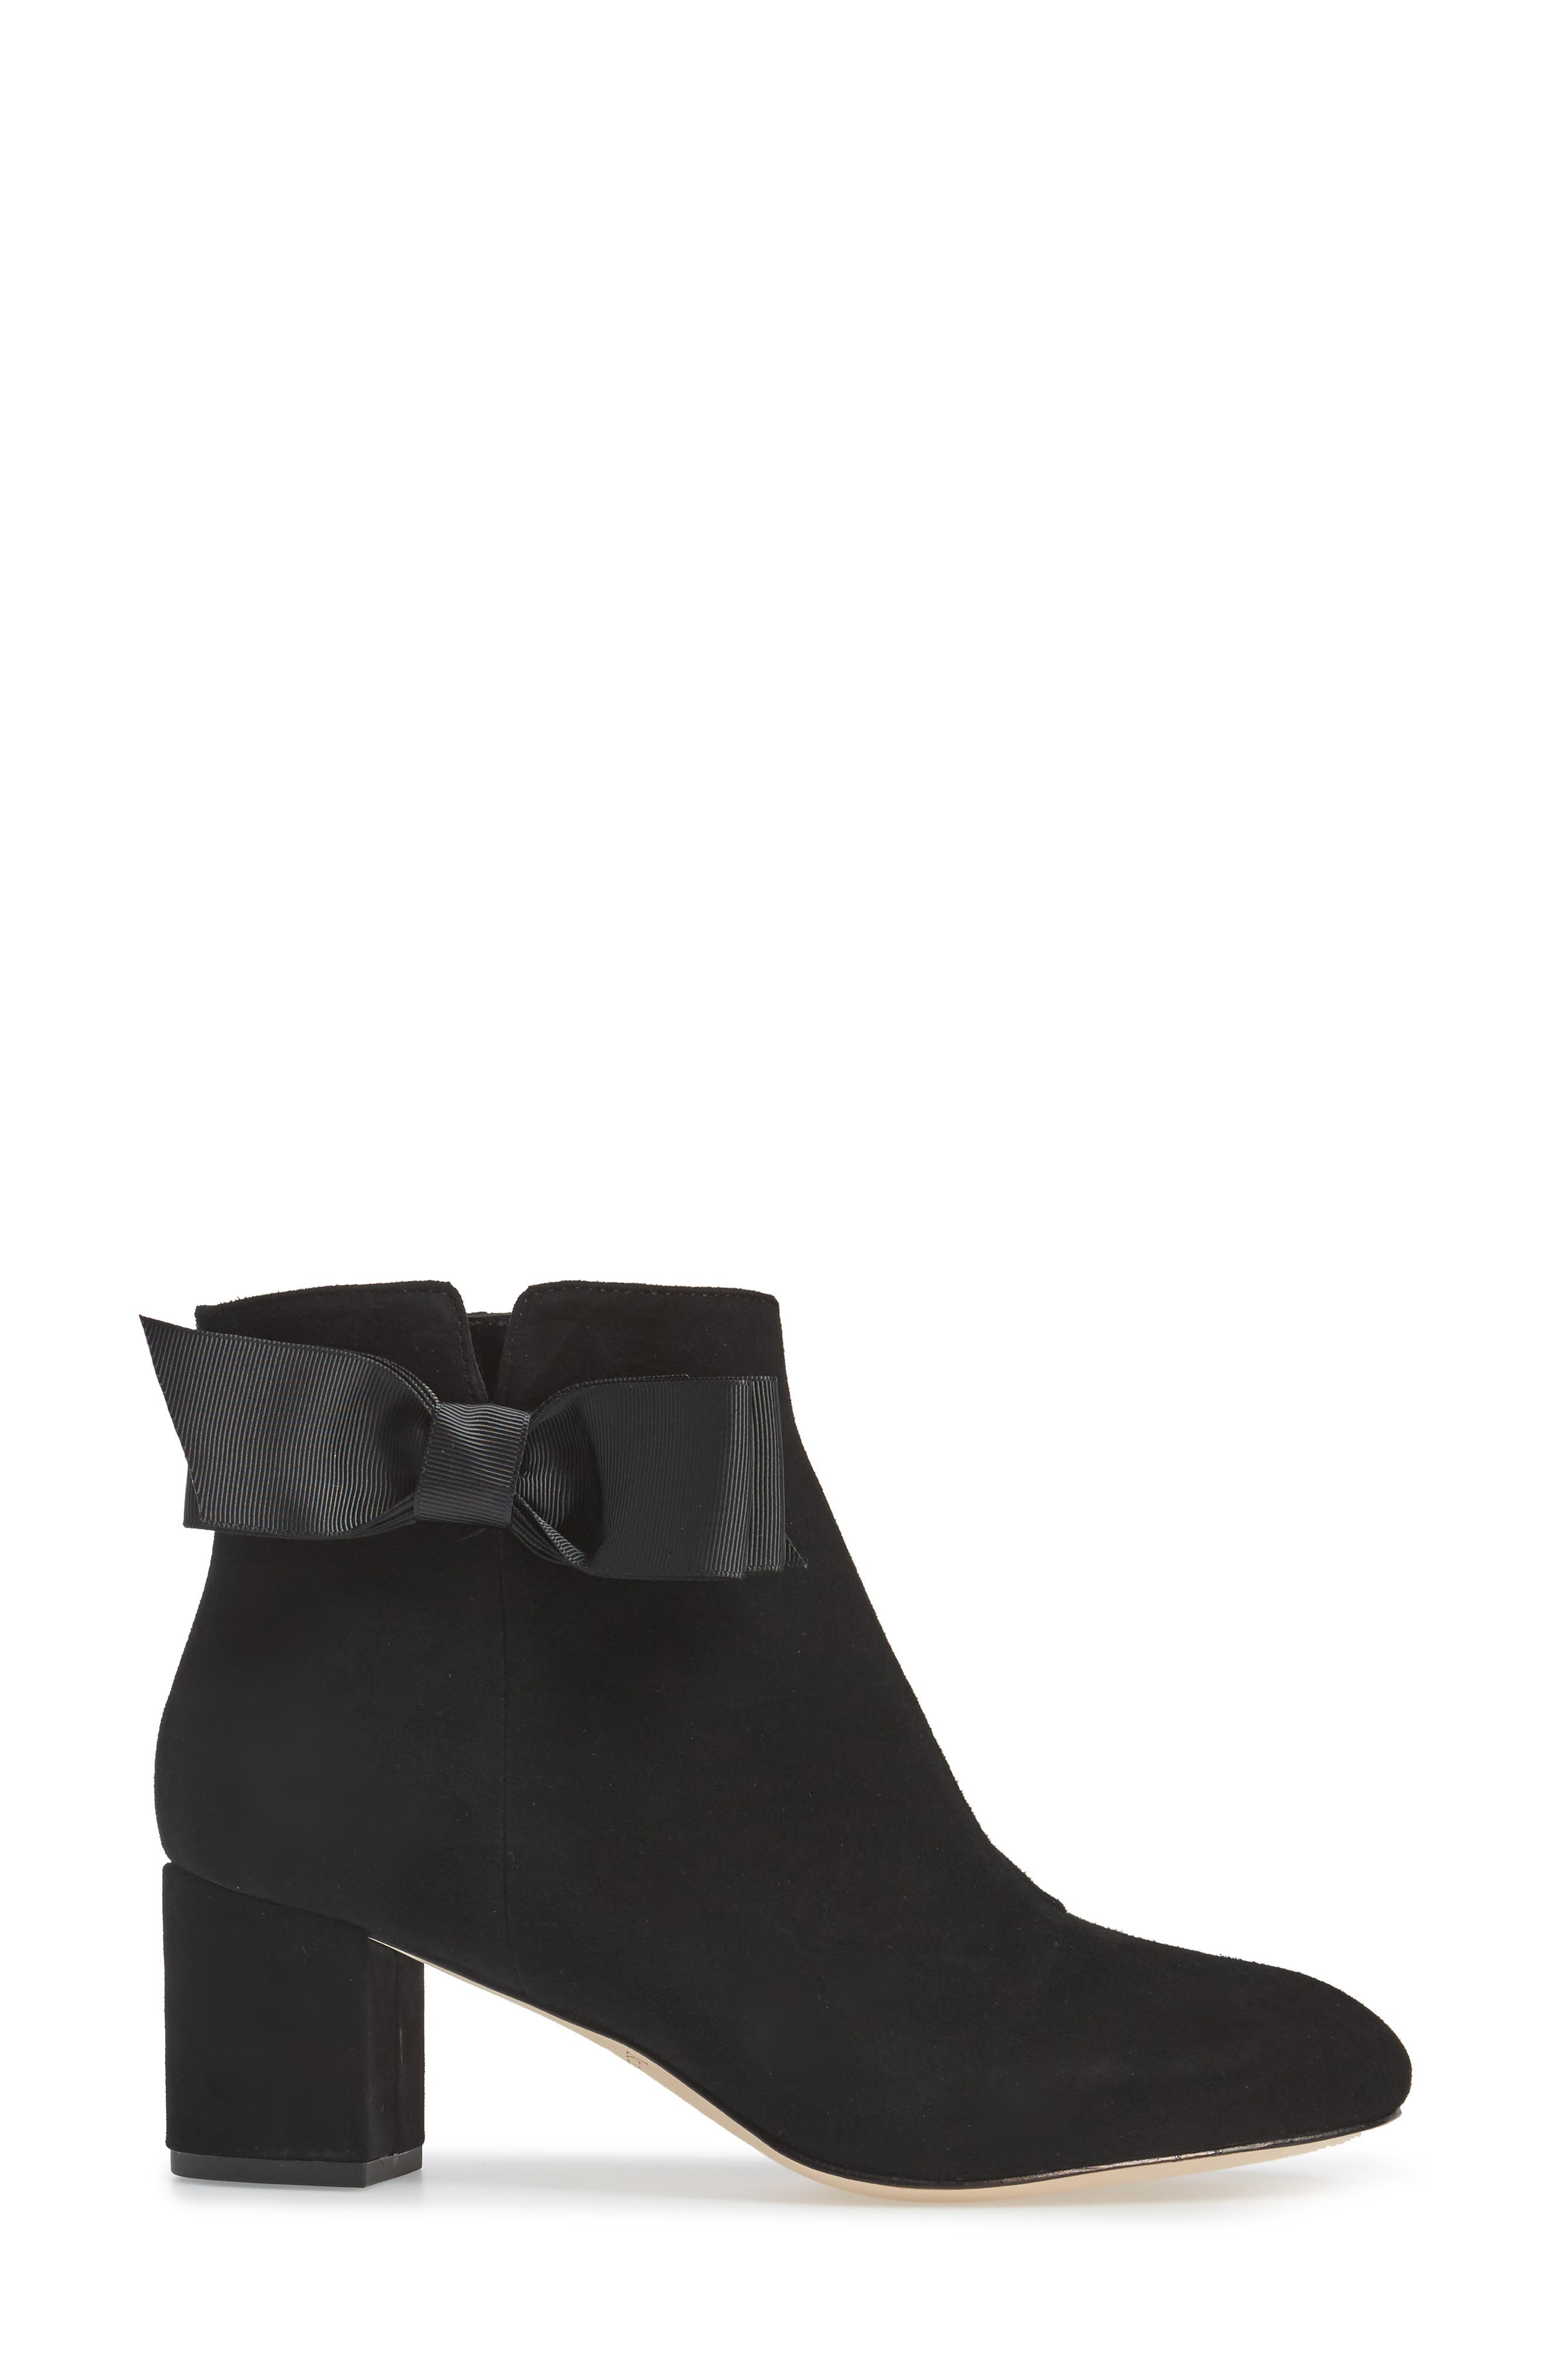 langley bow bootie,                             Alternate thumbnail 3, color,                             Black